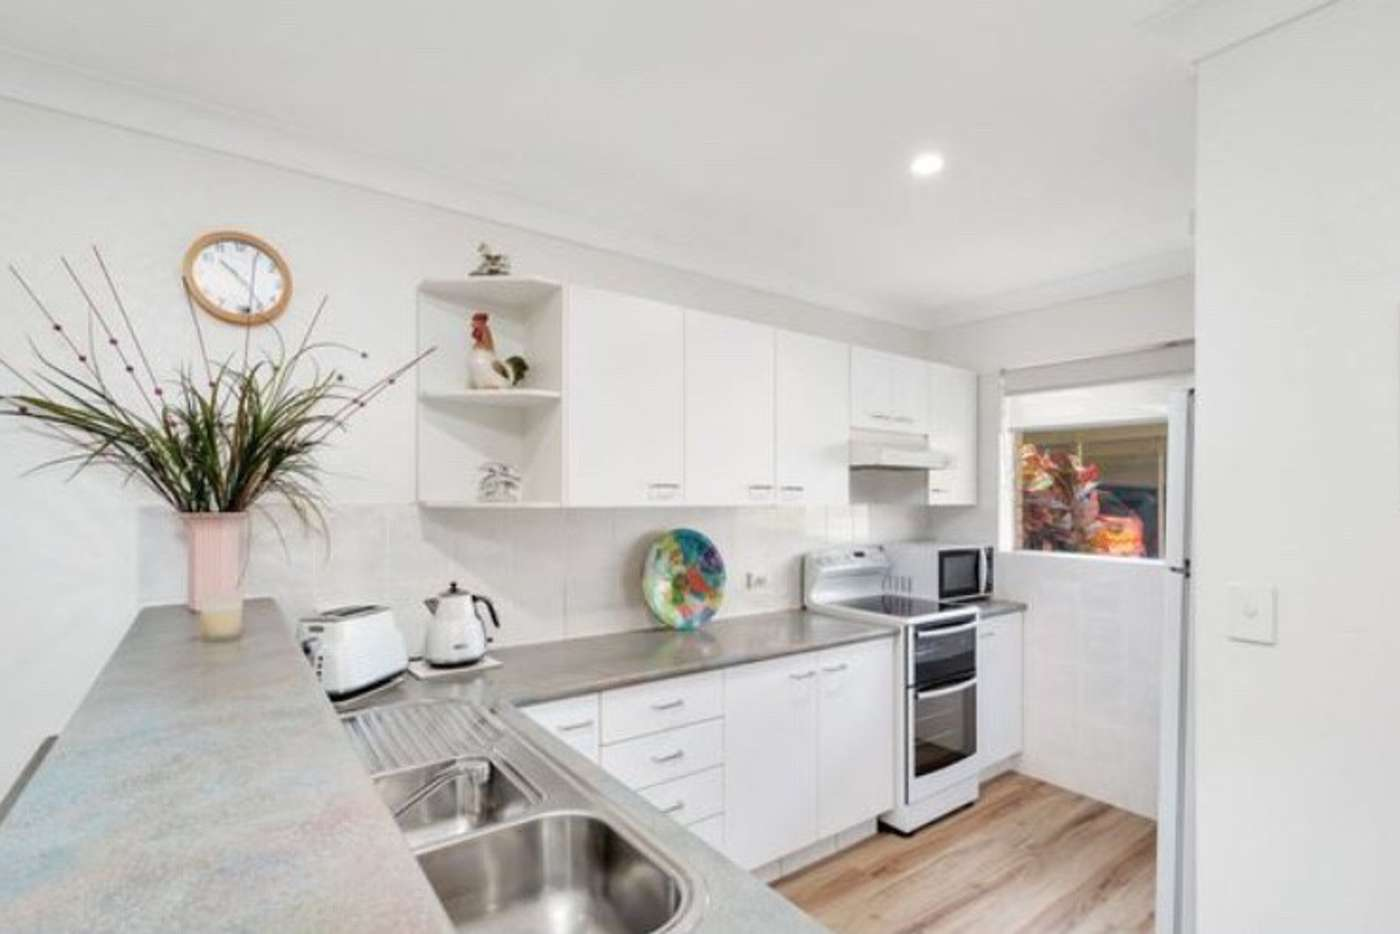 Main view of Homely villa listing, 4/31 Monte Carlo Avenue, Surfers Paradise QLD 4217